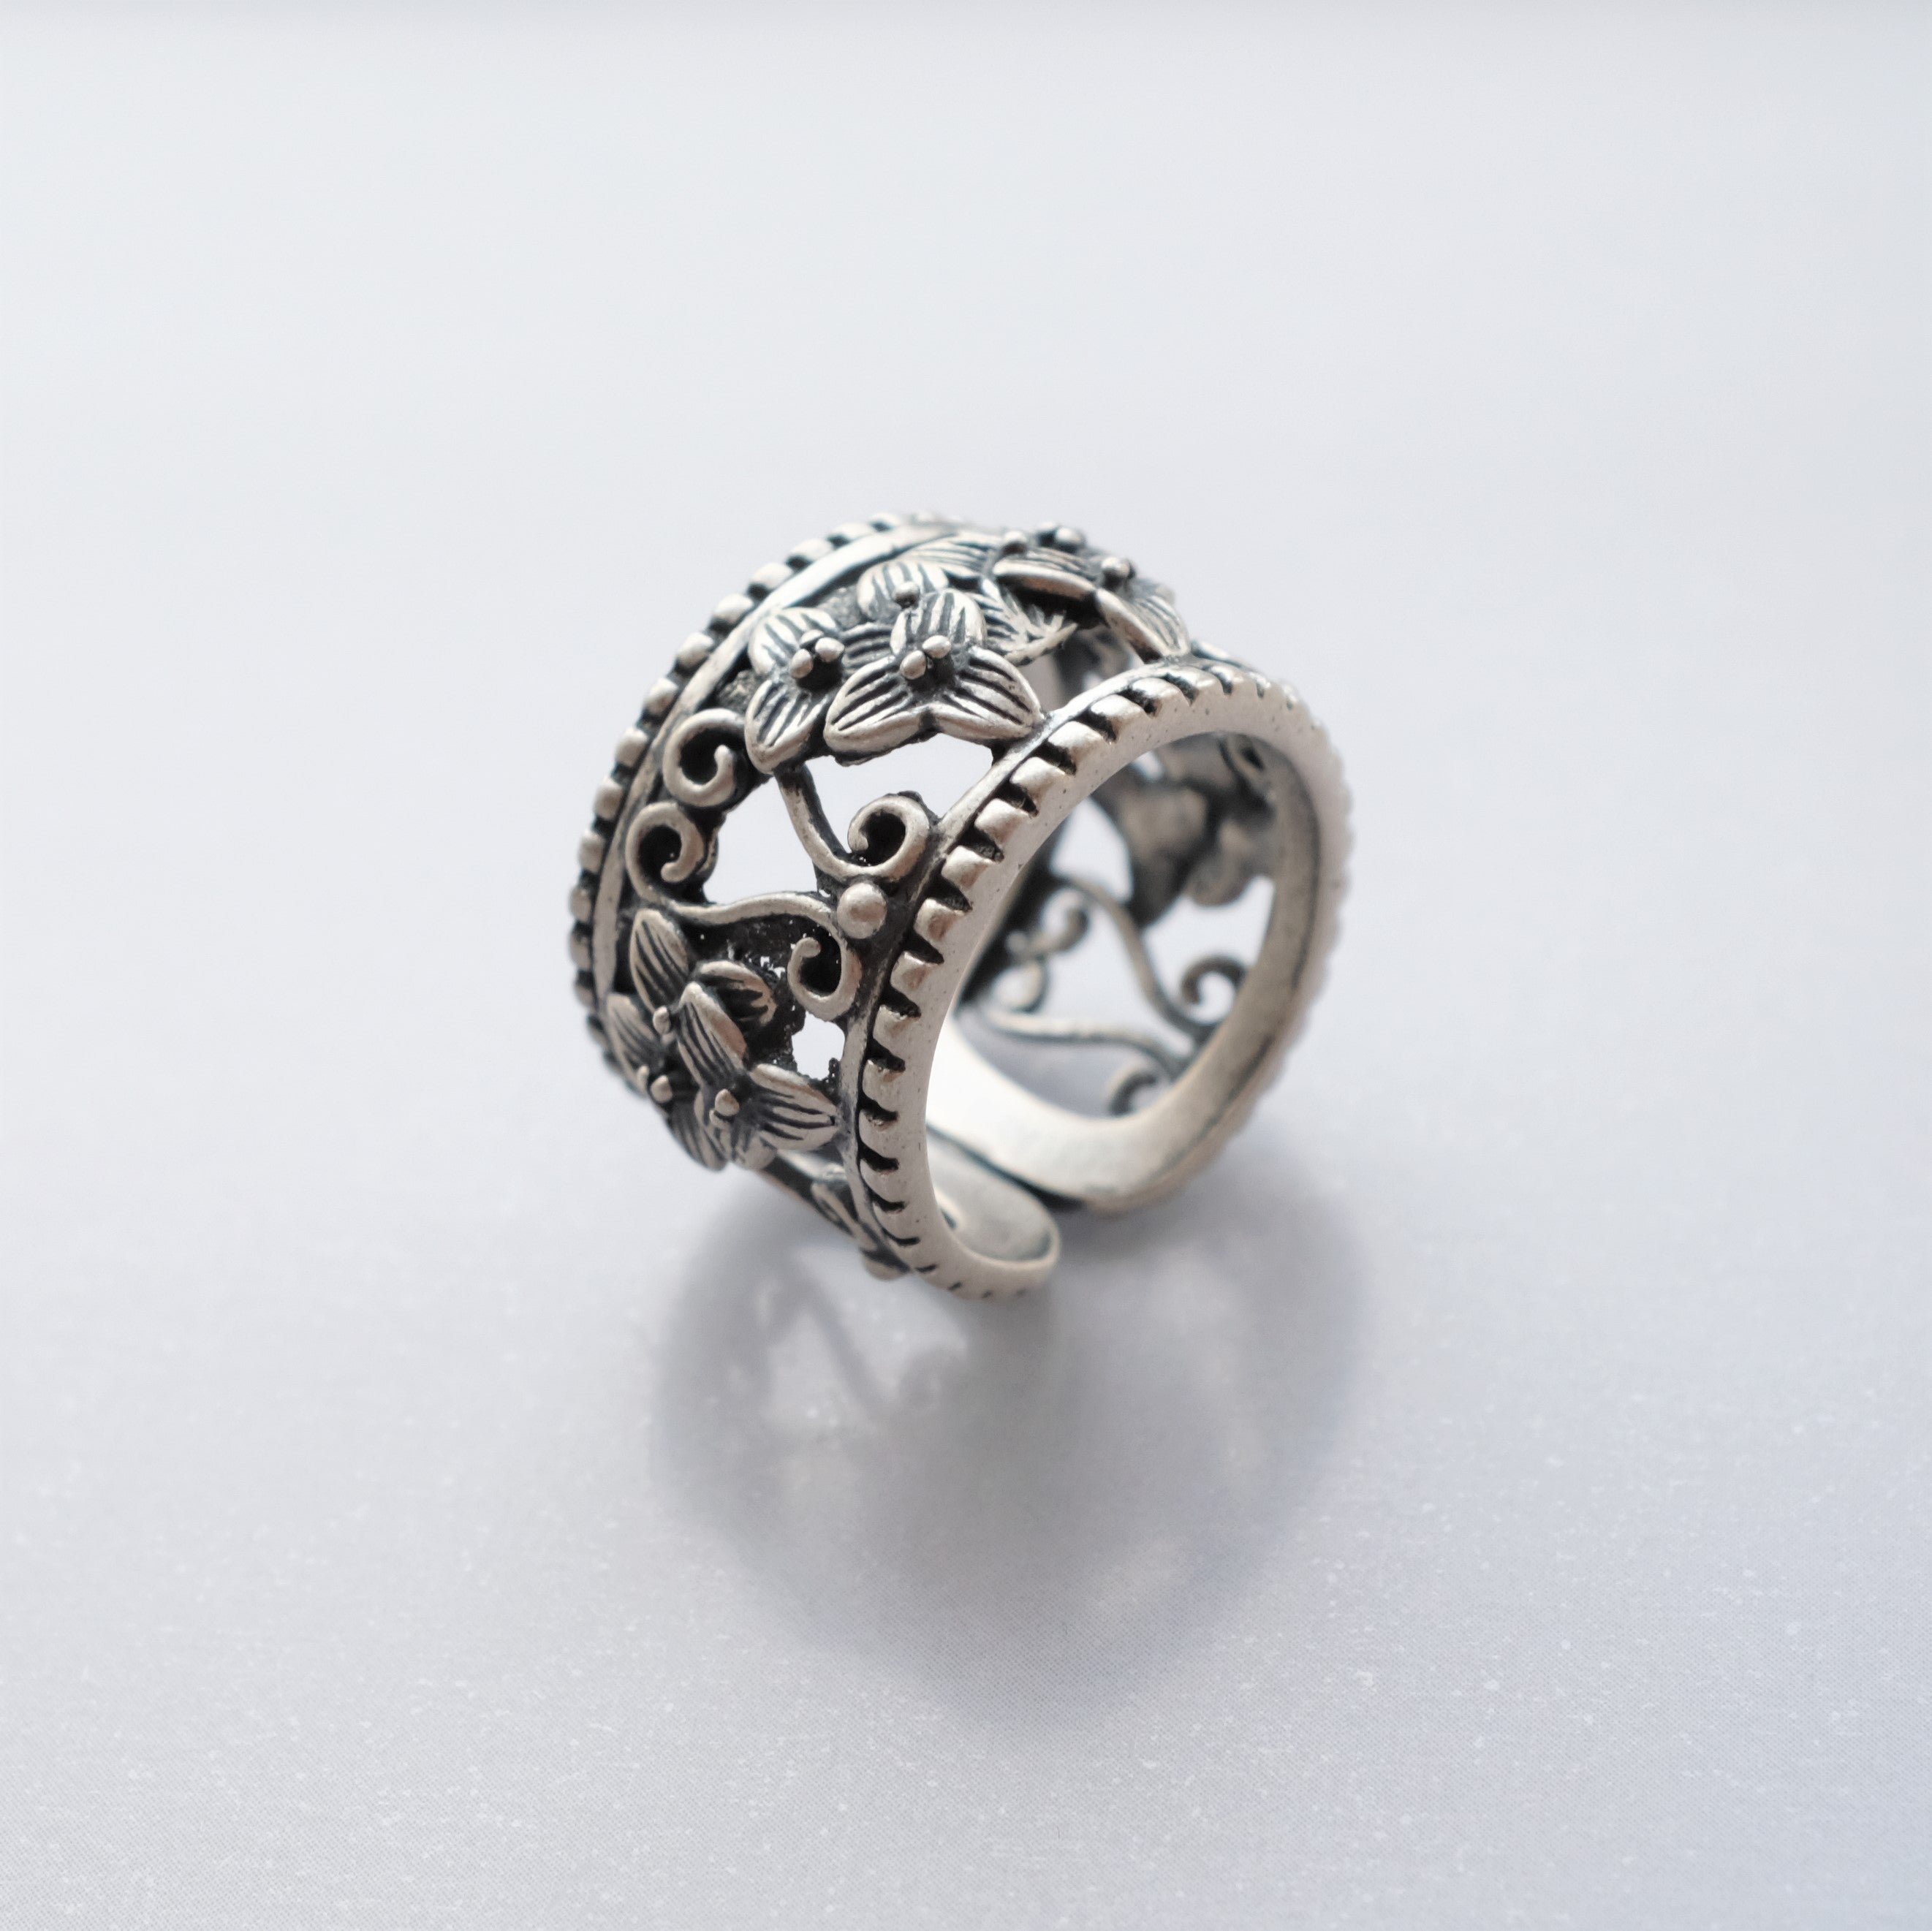 Vintage Beauty Silver Ring